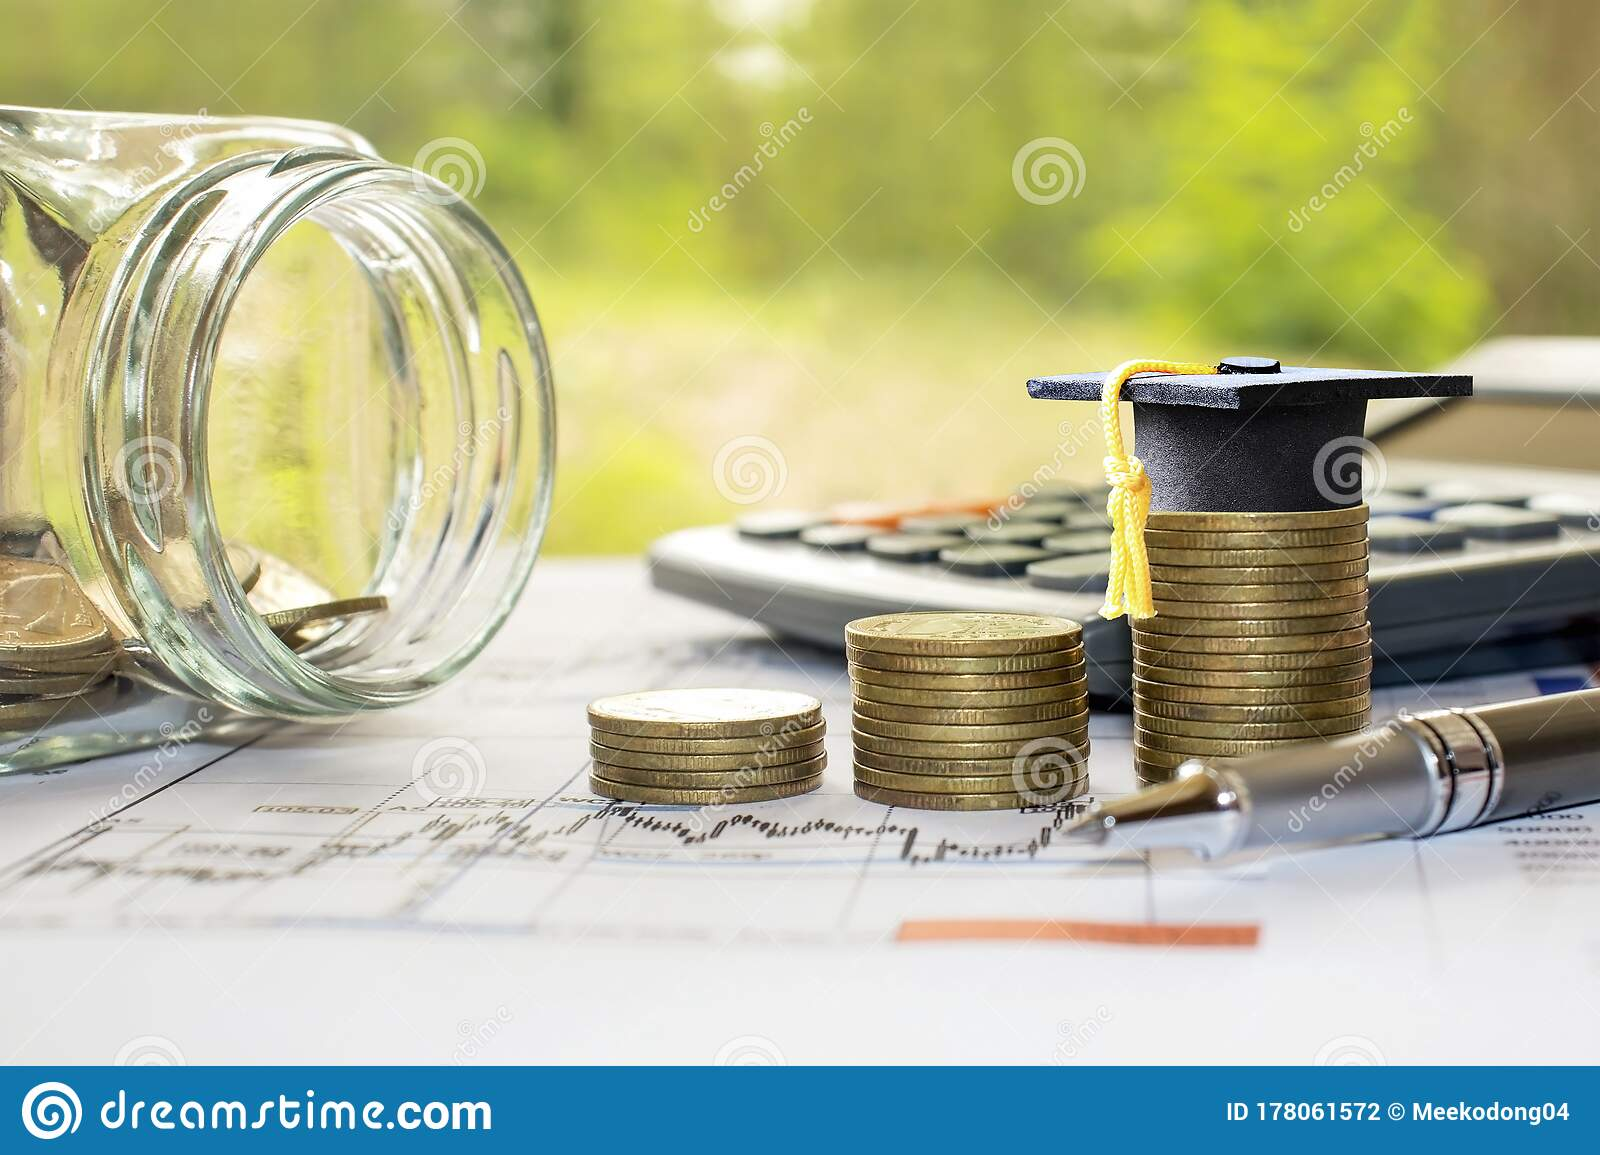 Graduation Hats On A Pile Of Coins And A Money Jar With The Idea Of Saving Money For Education Stock Photo Image Of Coin Achievement 178061572